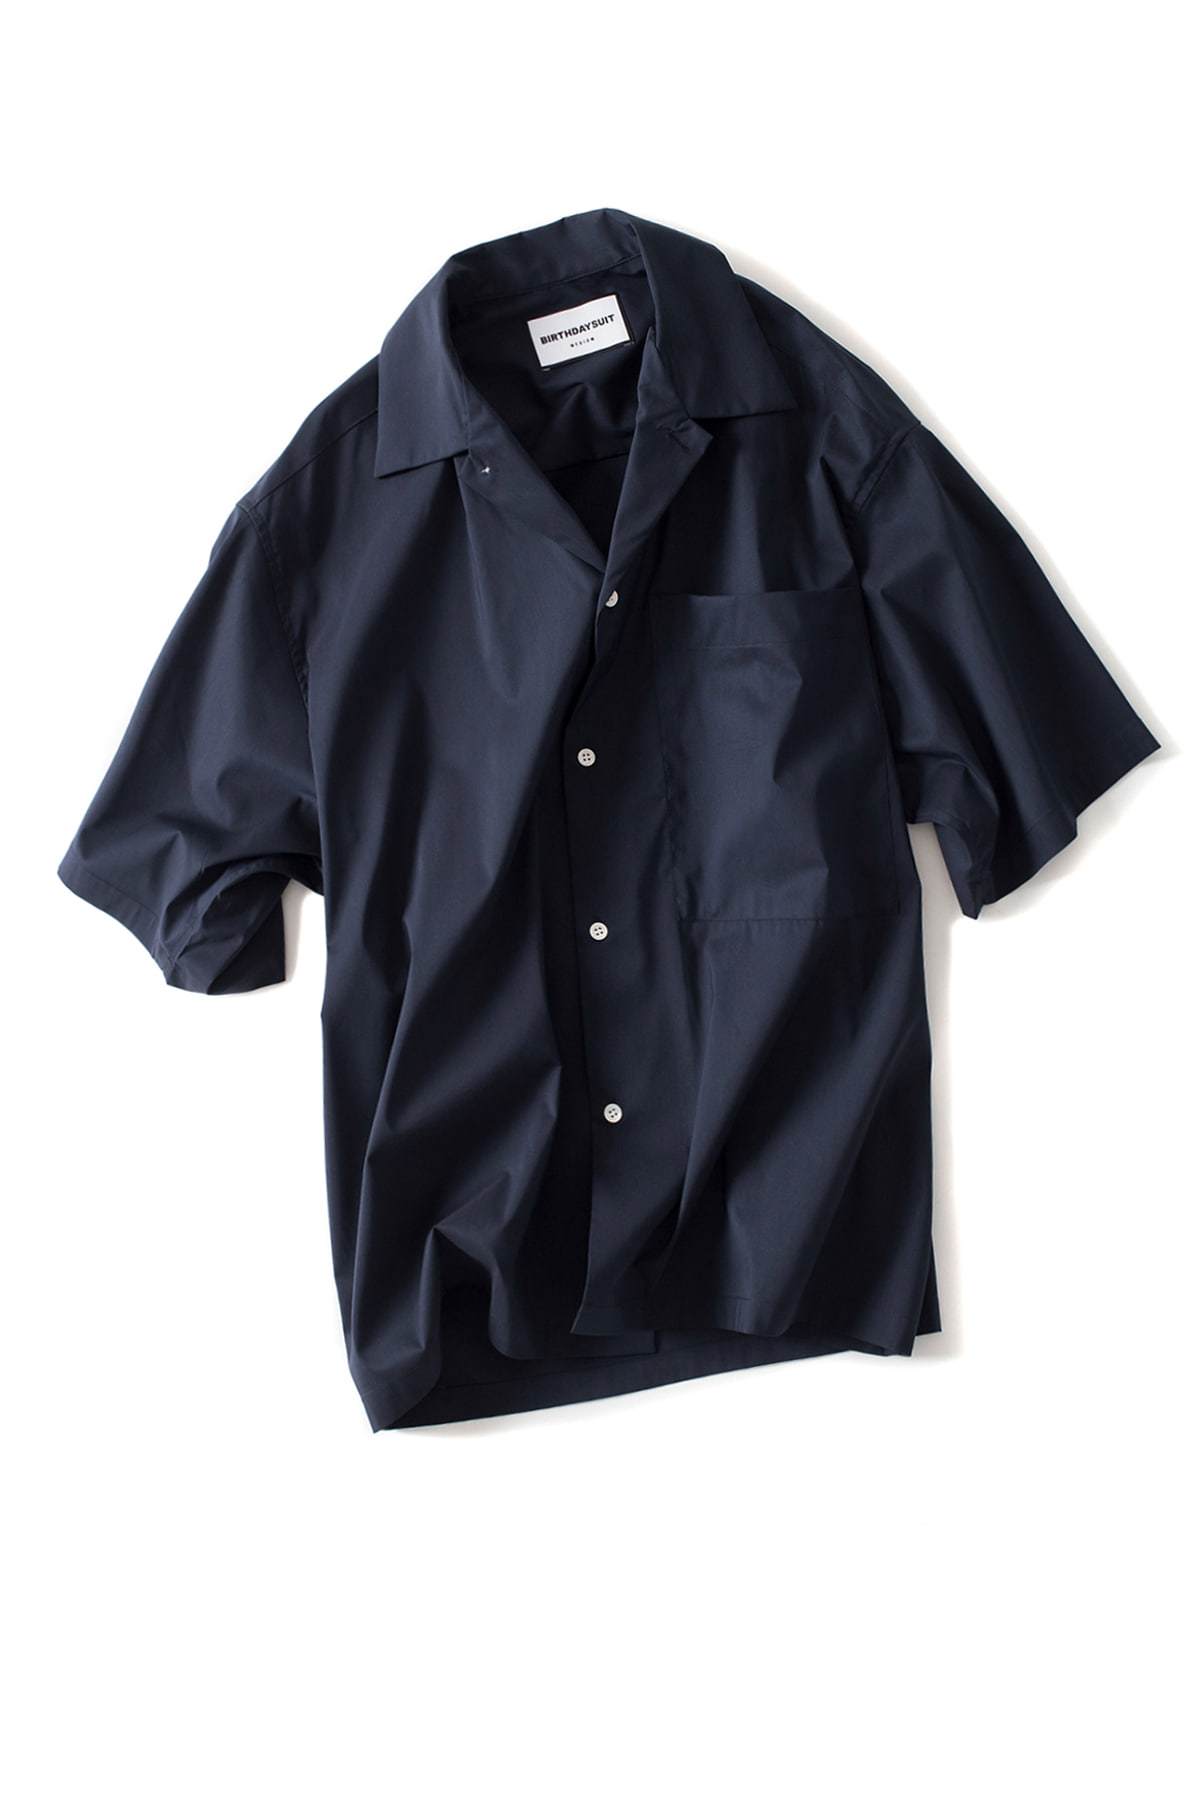 BIRTHDAYSUIT : Oversized HS Shirt(Deep Navy)